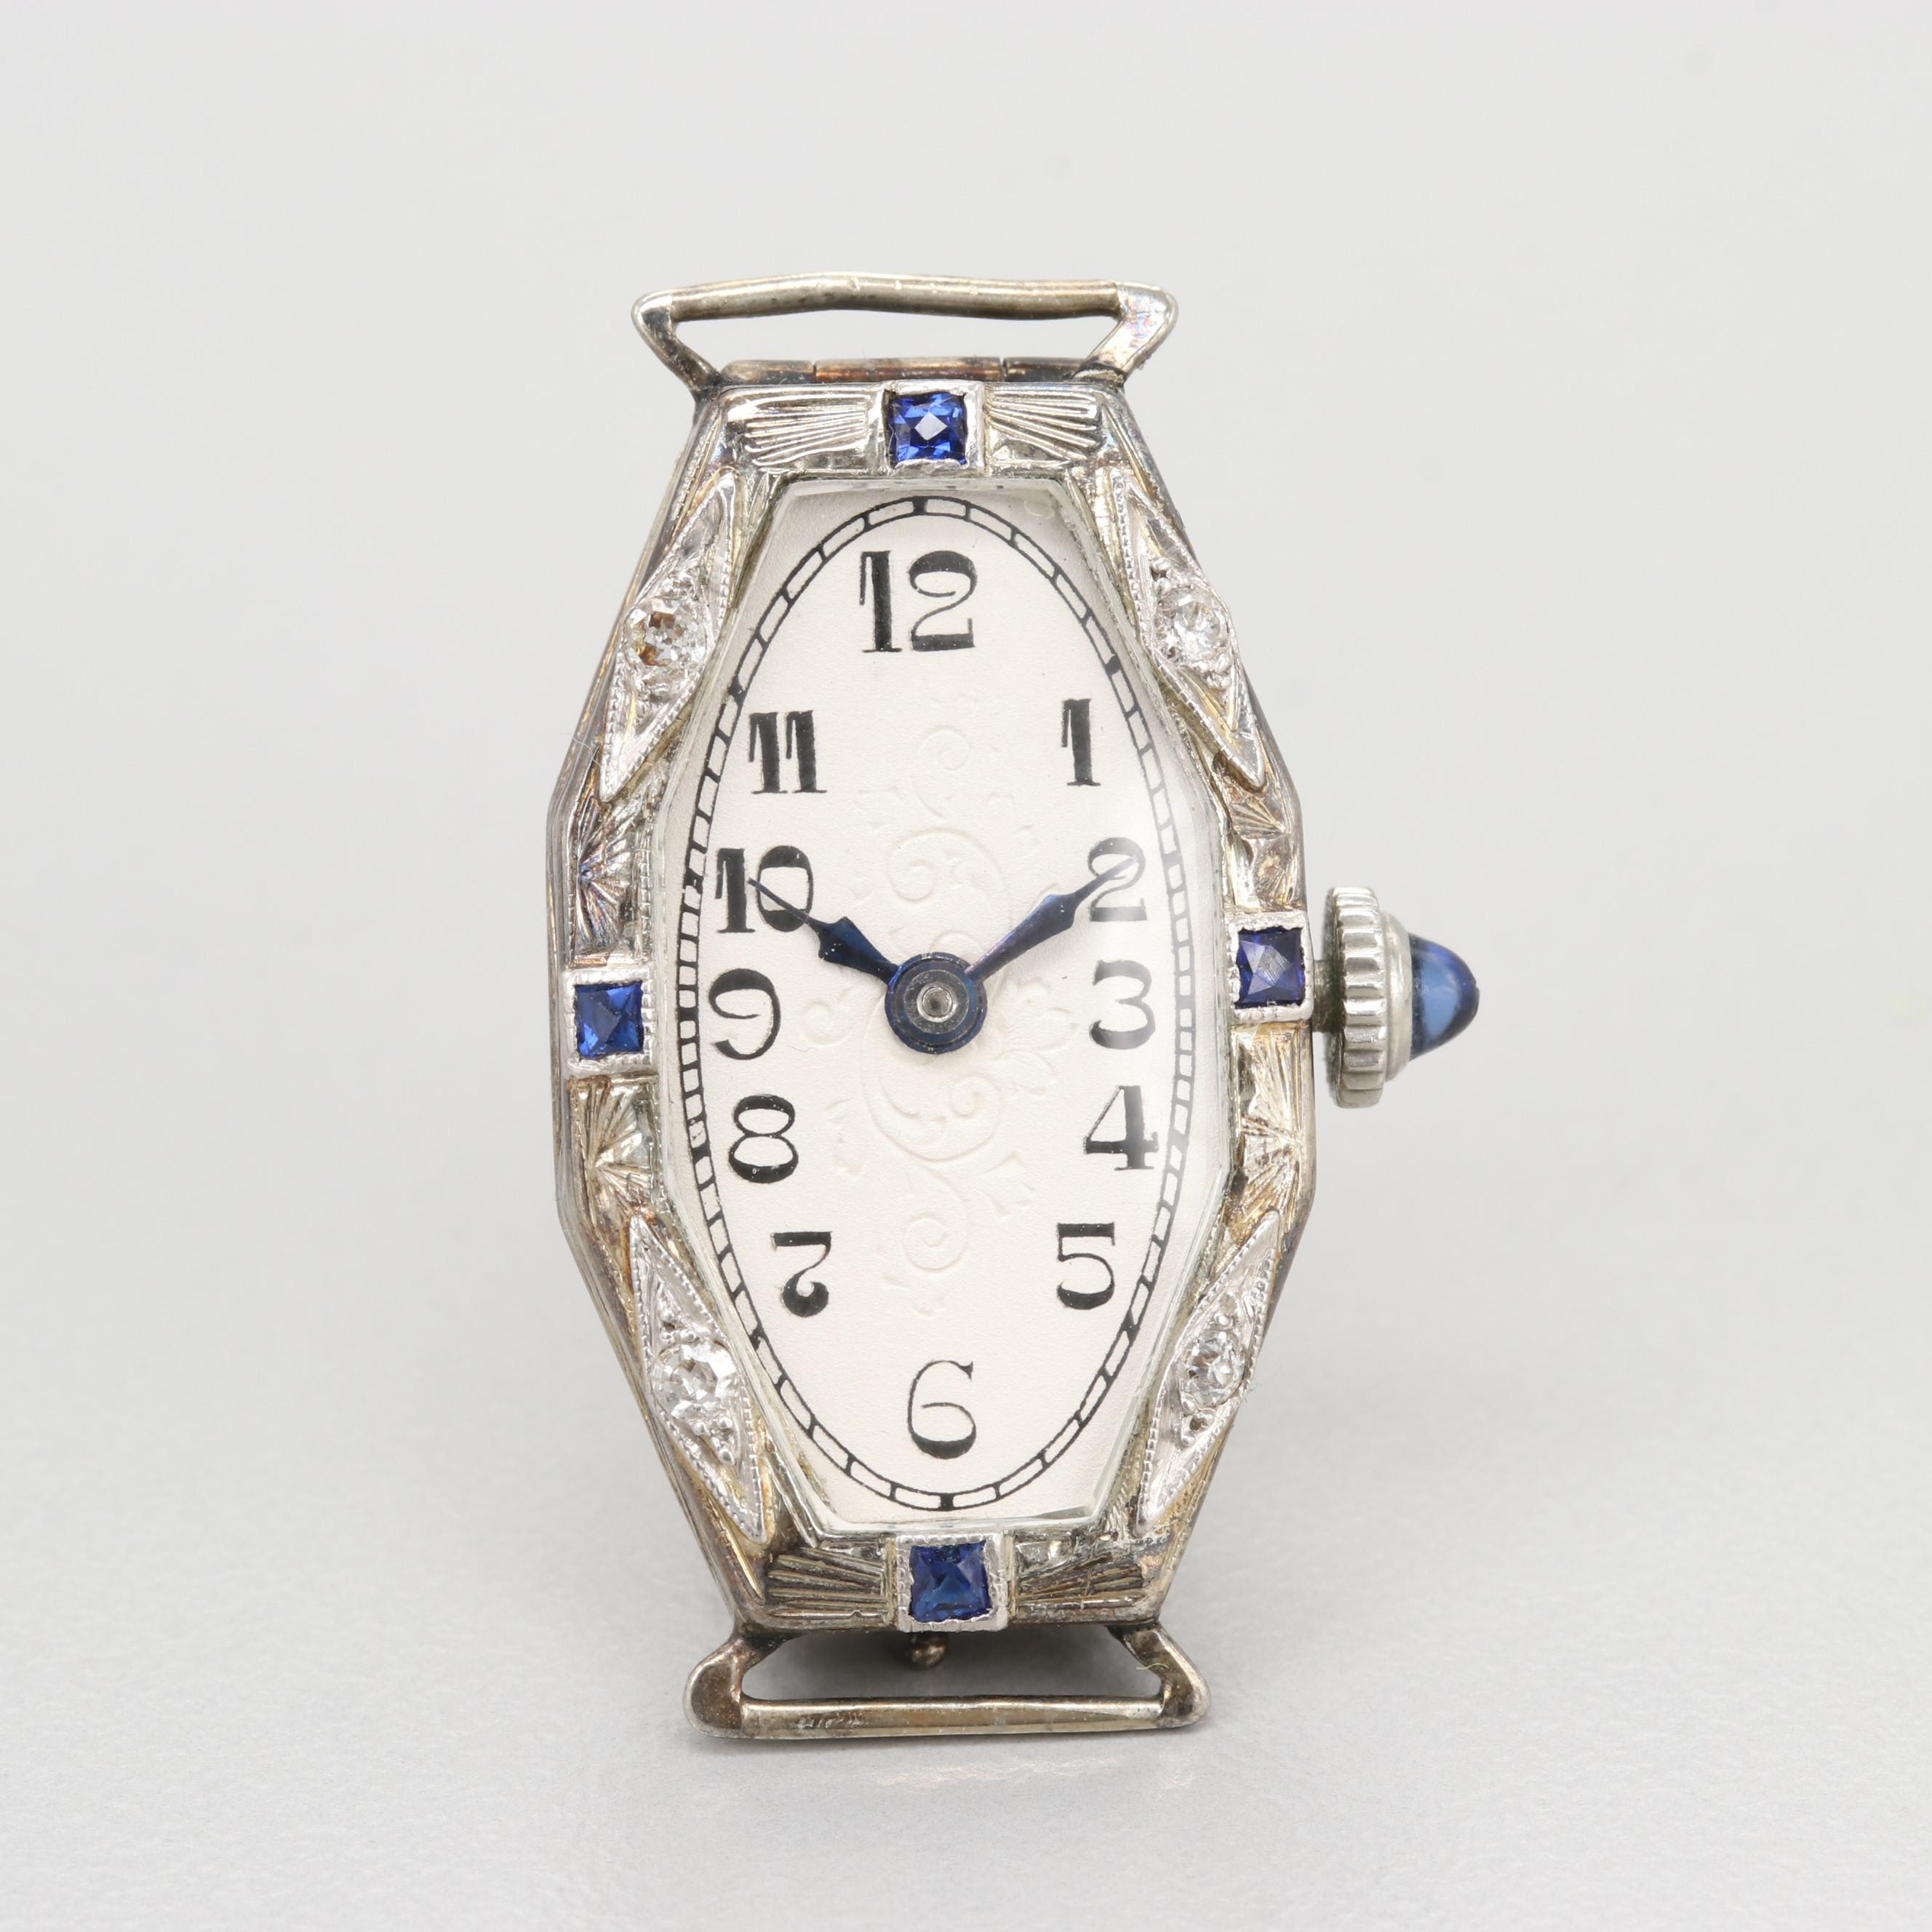 18K White Gold Watch With Platinum Trim Diamonds and Sapphires